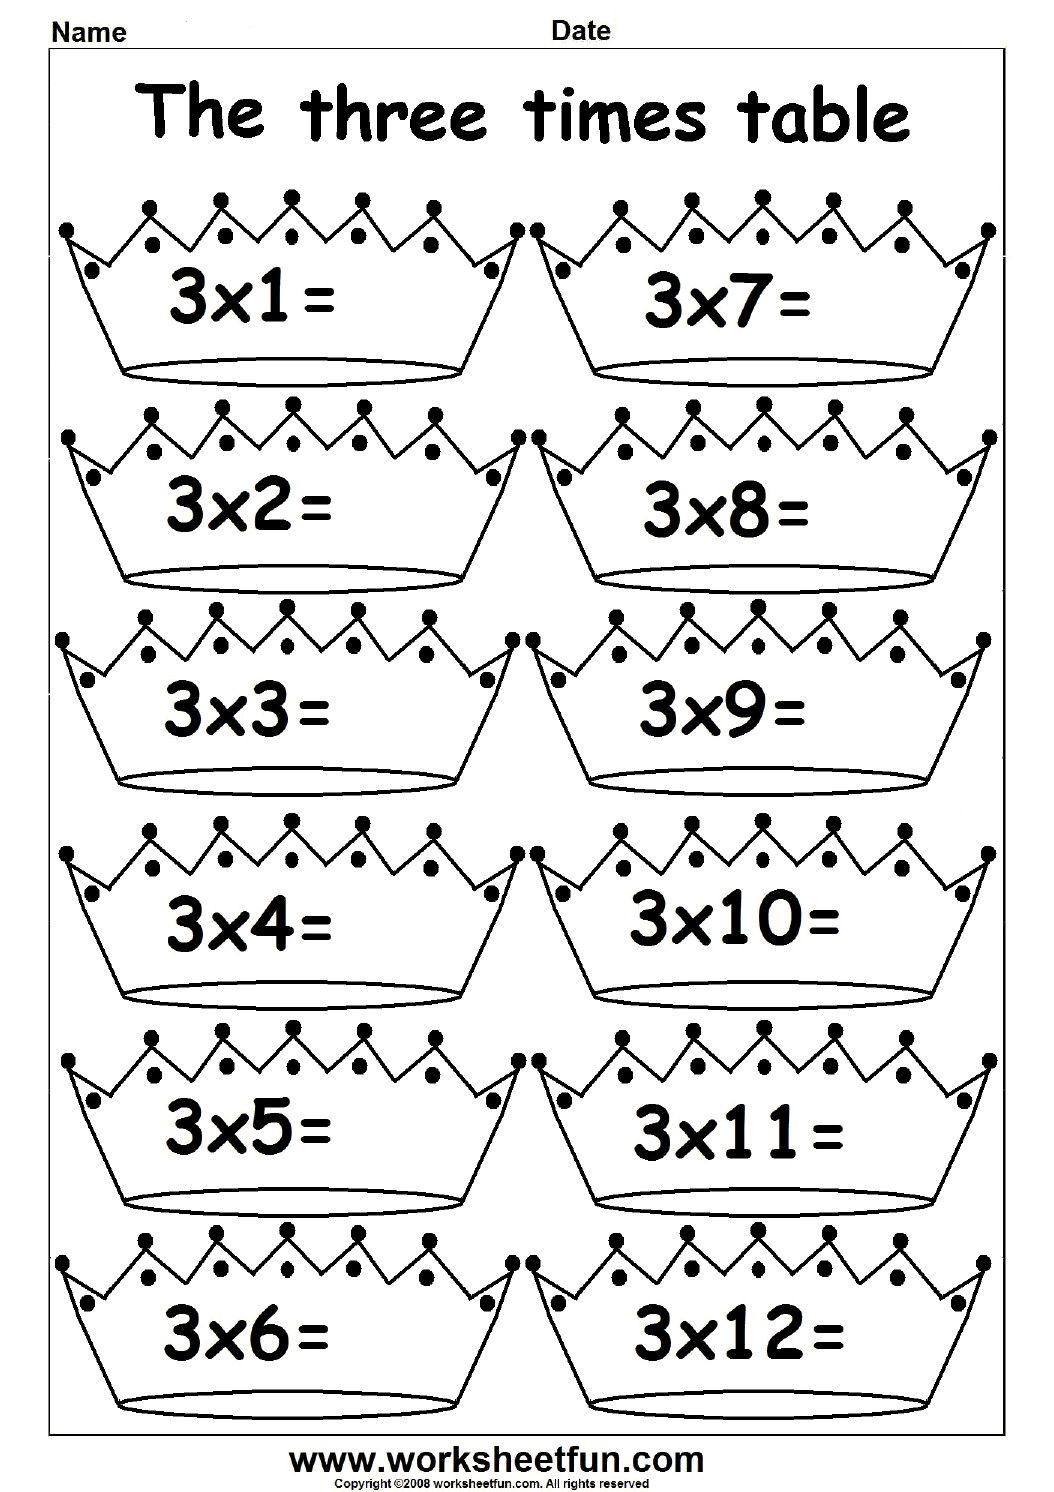 2 Maths Times Tables Worksheets 2 3 4 5 6 7 8 9 10 11 And